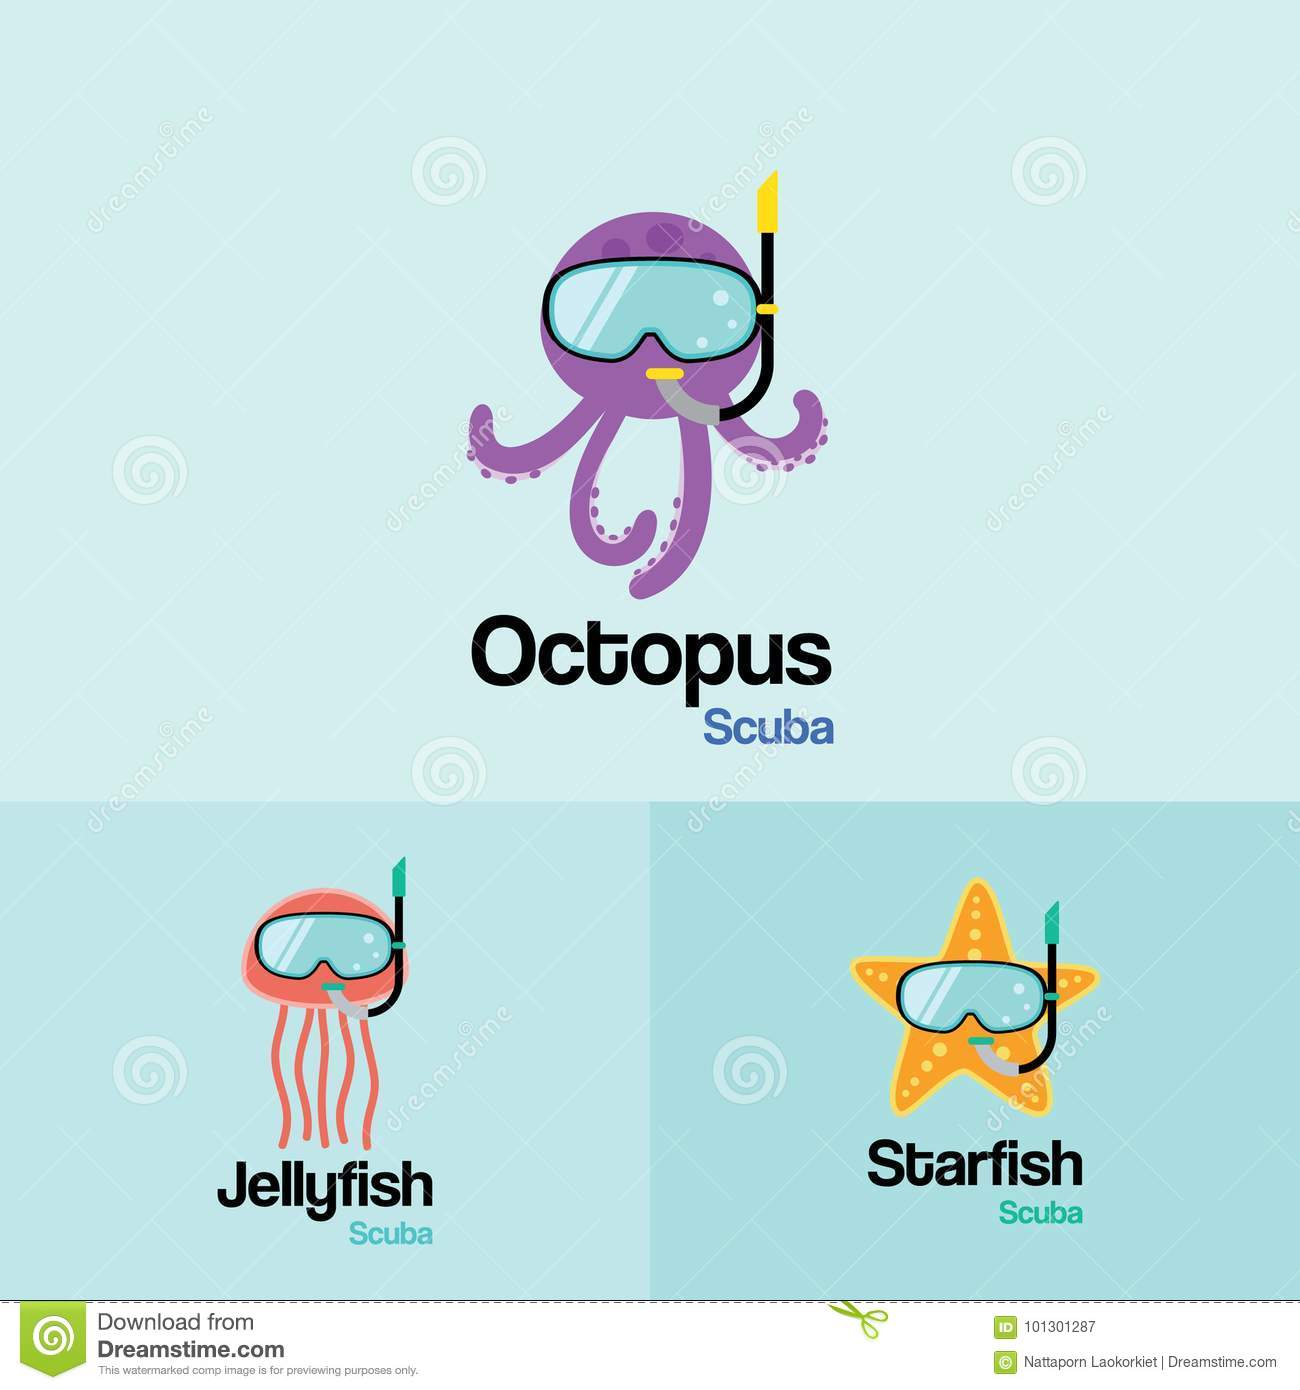 Sea Life Animal Scuba Logo Template Octopus Jellyfish Starfish With Diving Mask In Flat Design For And Snorkeling Equipment Shop